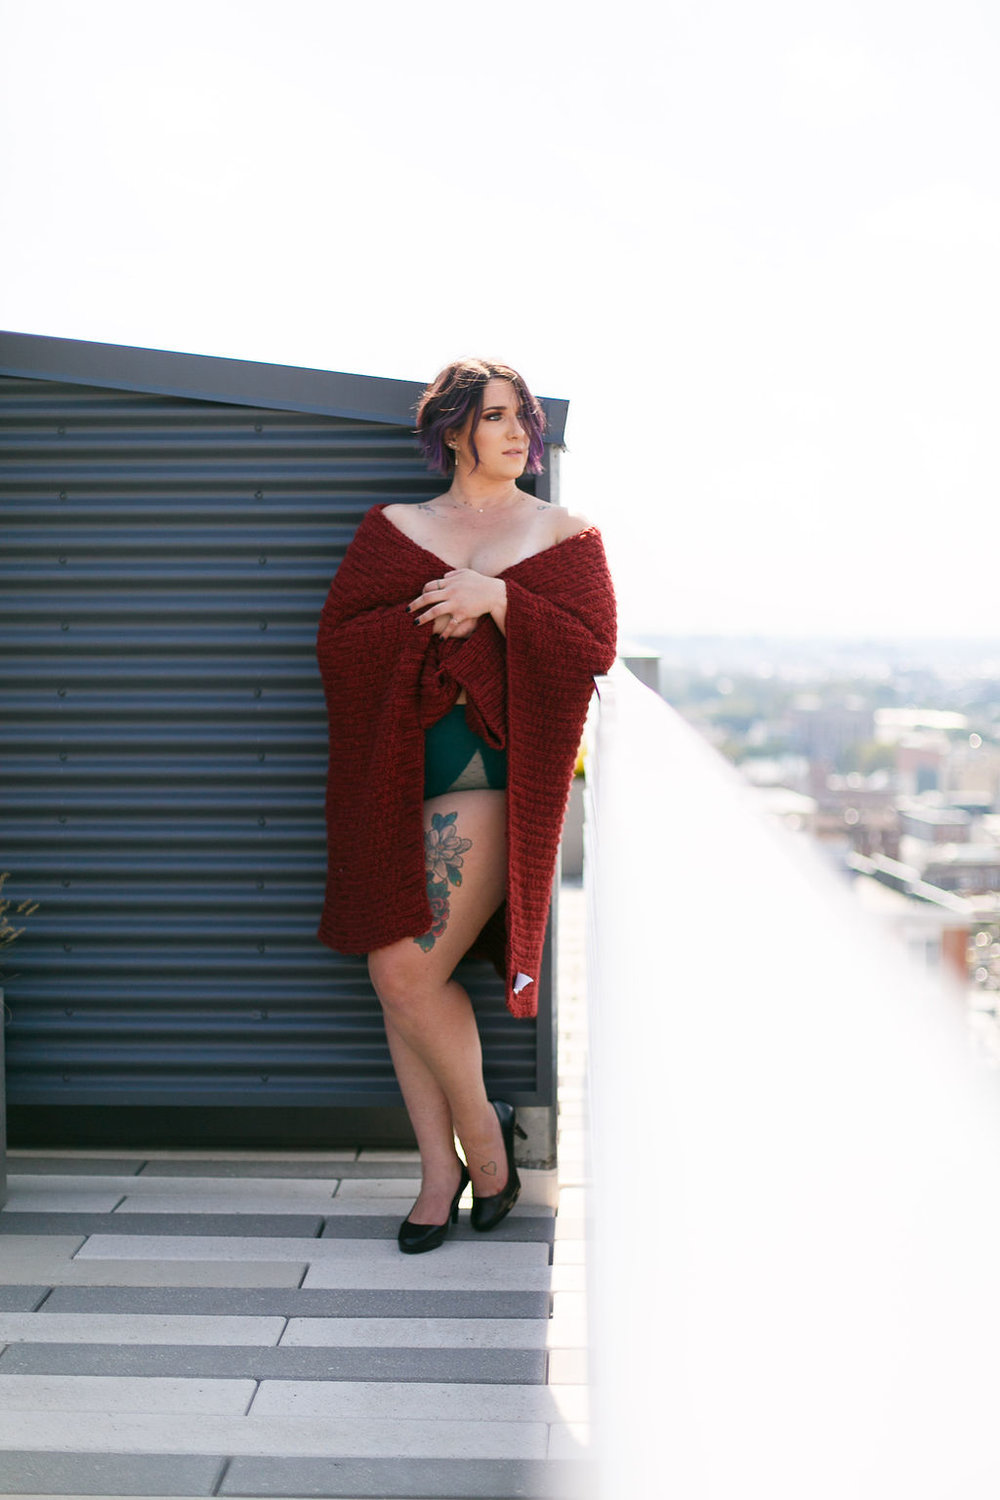 Philly Outdoor Rooftop Boudoir Session by Swiger Photography 44.jpg